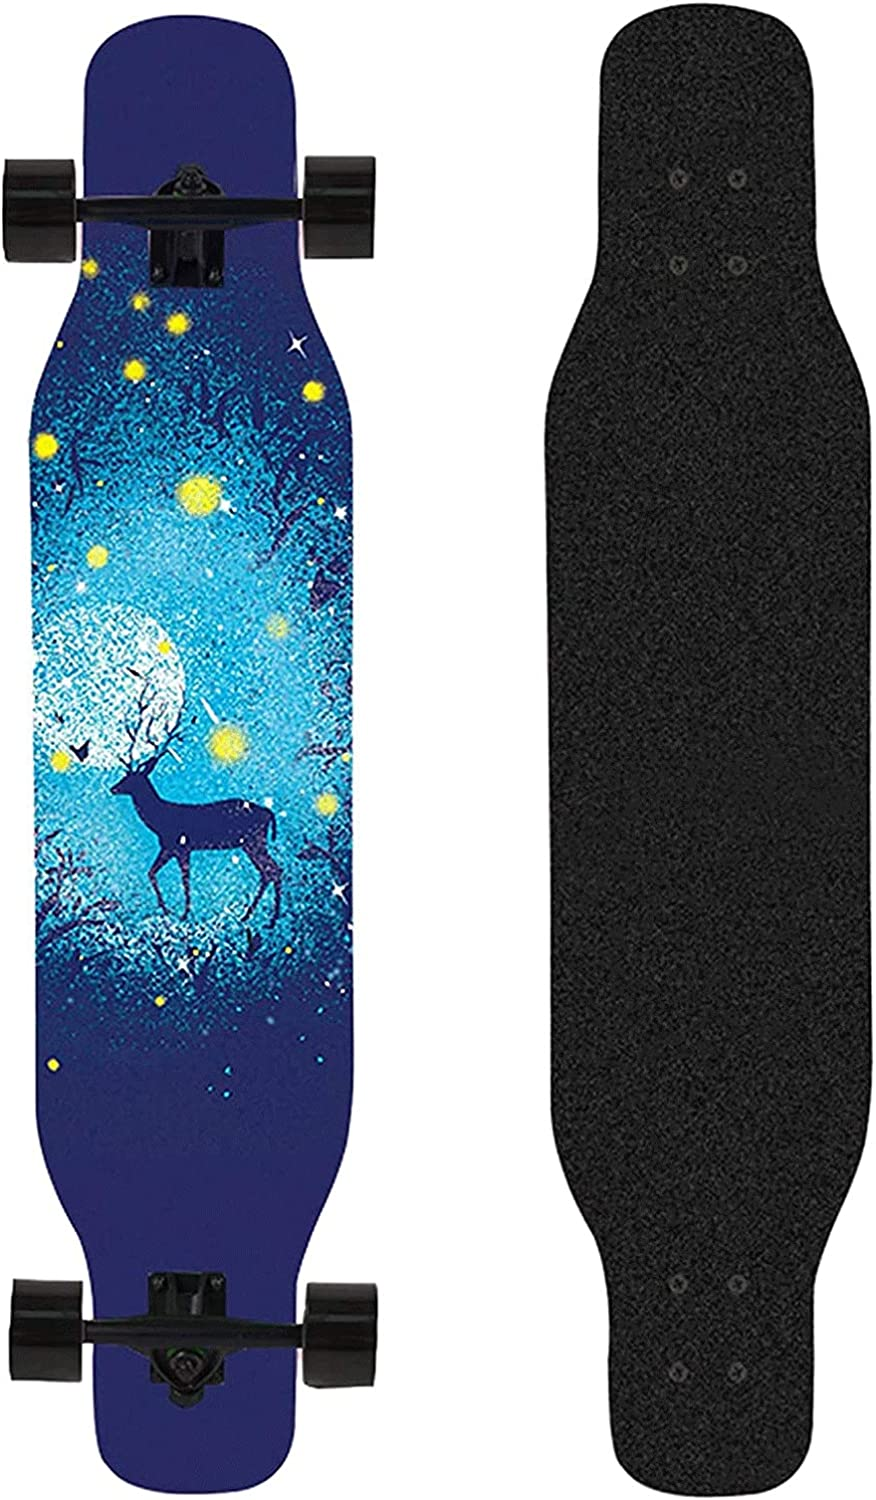 EEGUAI 42 Inch 8 Layer Skate Complete Max 73% OFF Ranking TOP9 Maple Skateboard Longboard